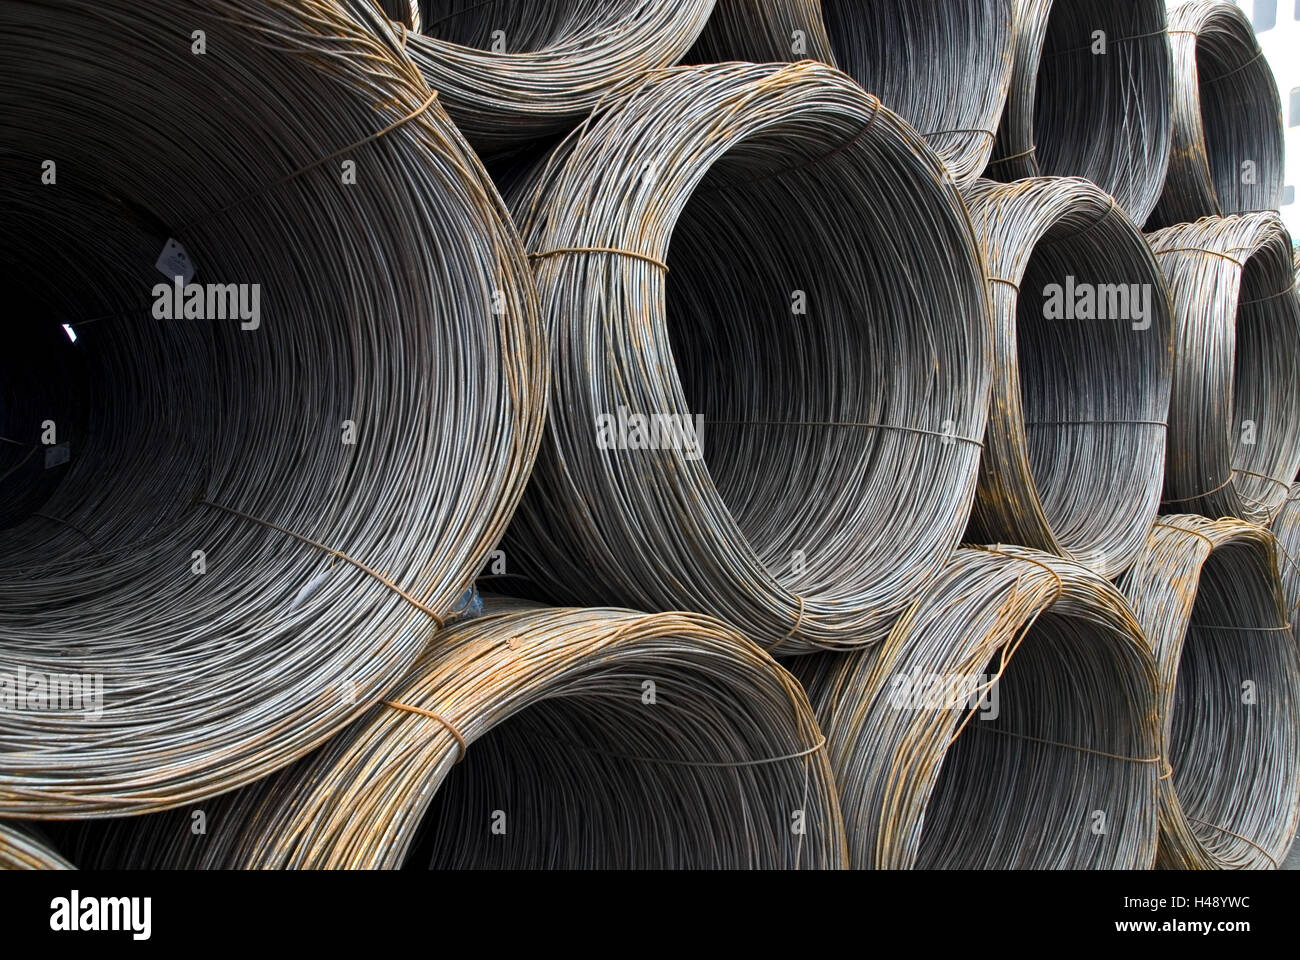 Wire Coils Stock Photos & Wire Coils Stock Images - Alamy